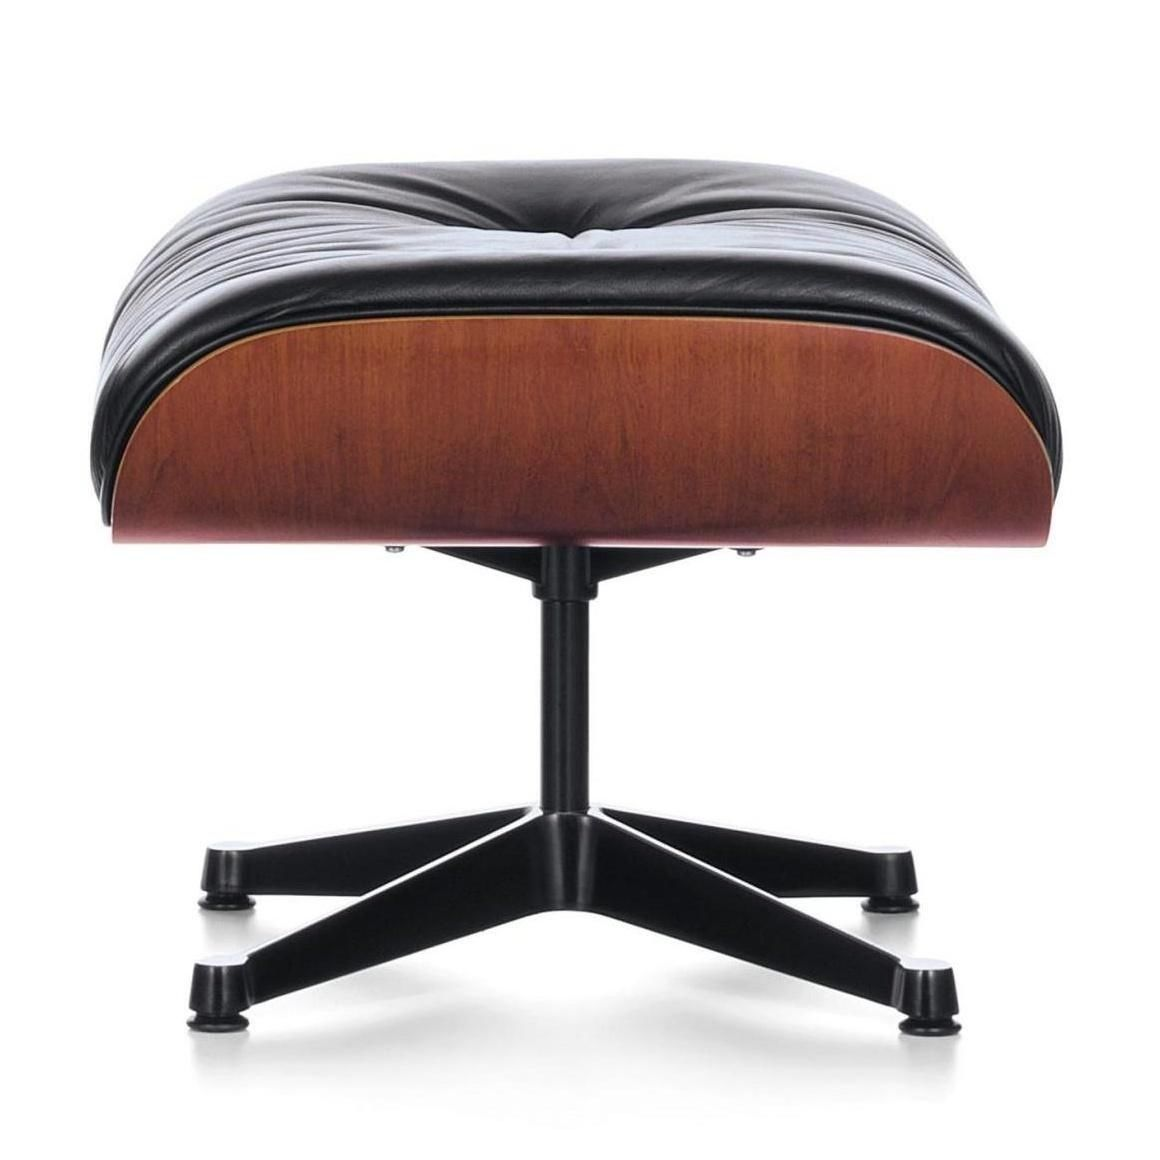 Eames lounge chair ottoman vitra for Pietement eames